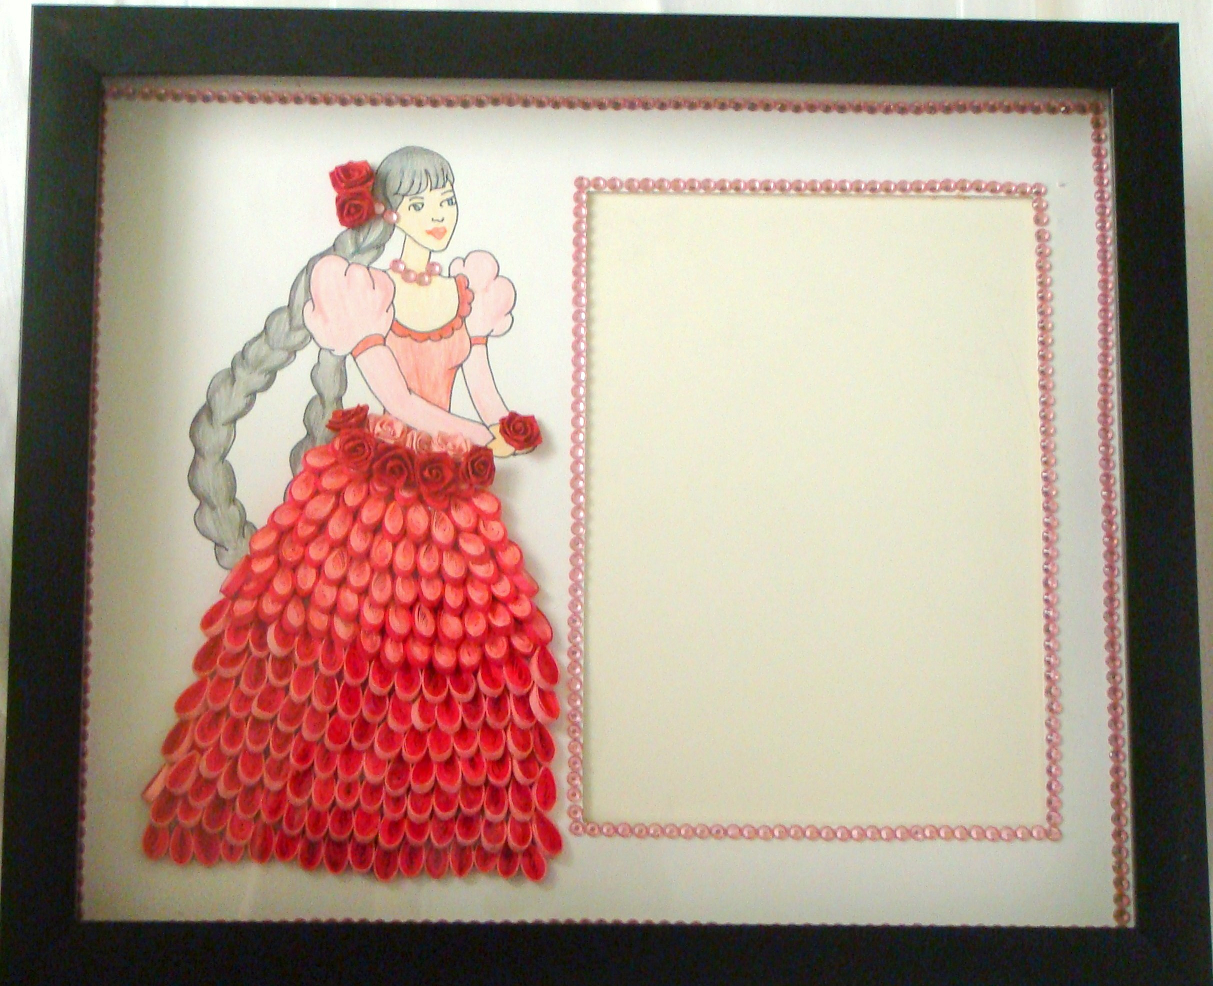 Latest Quilling Photo Frame Designs Online 2015 - Quilling designs